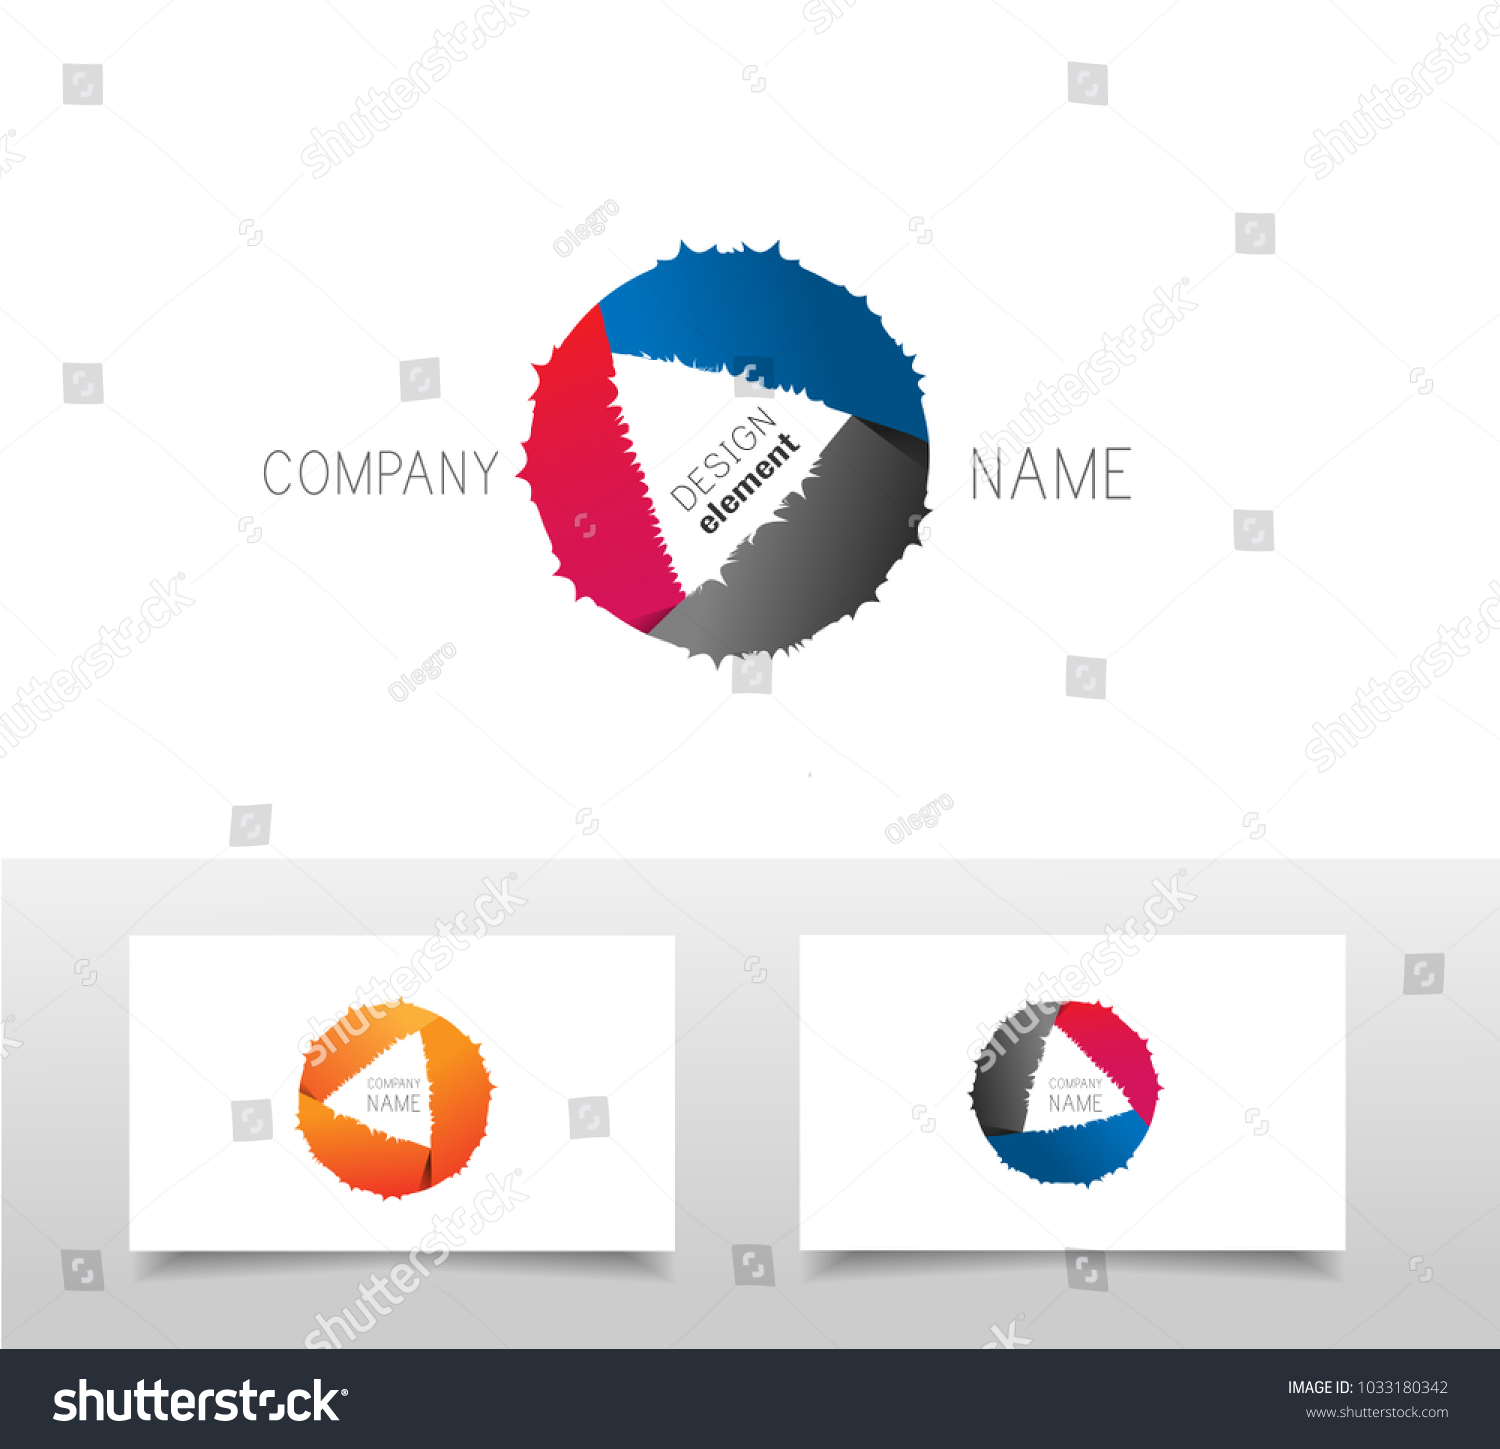 Circle design triangle inside logo template stock vector 1033180342 circle design with triangle inside logo template with business card template ctor buycottarizona Image collections